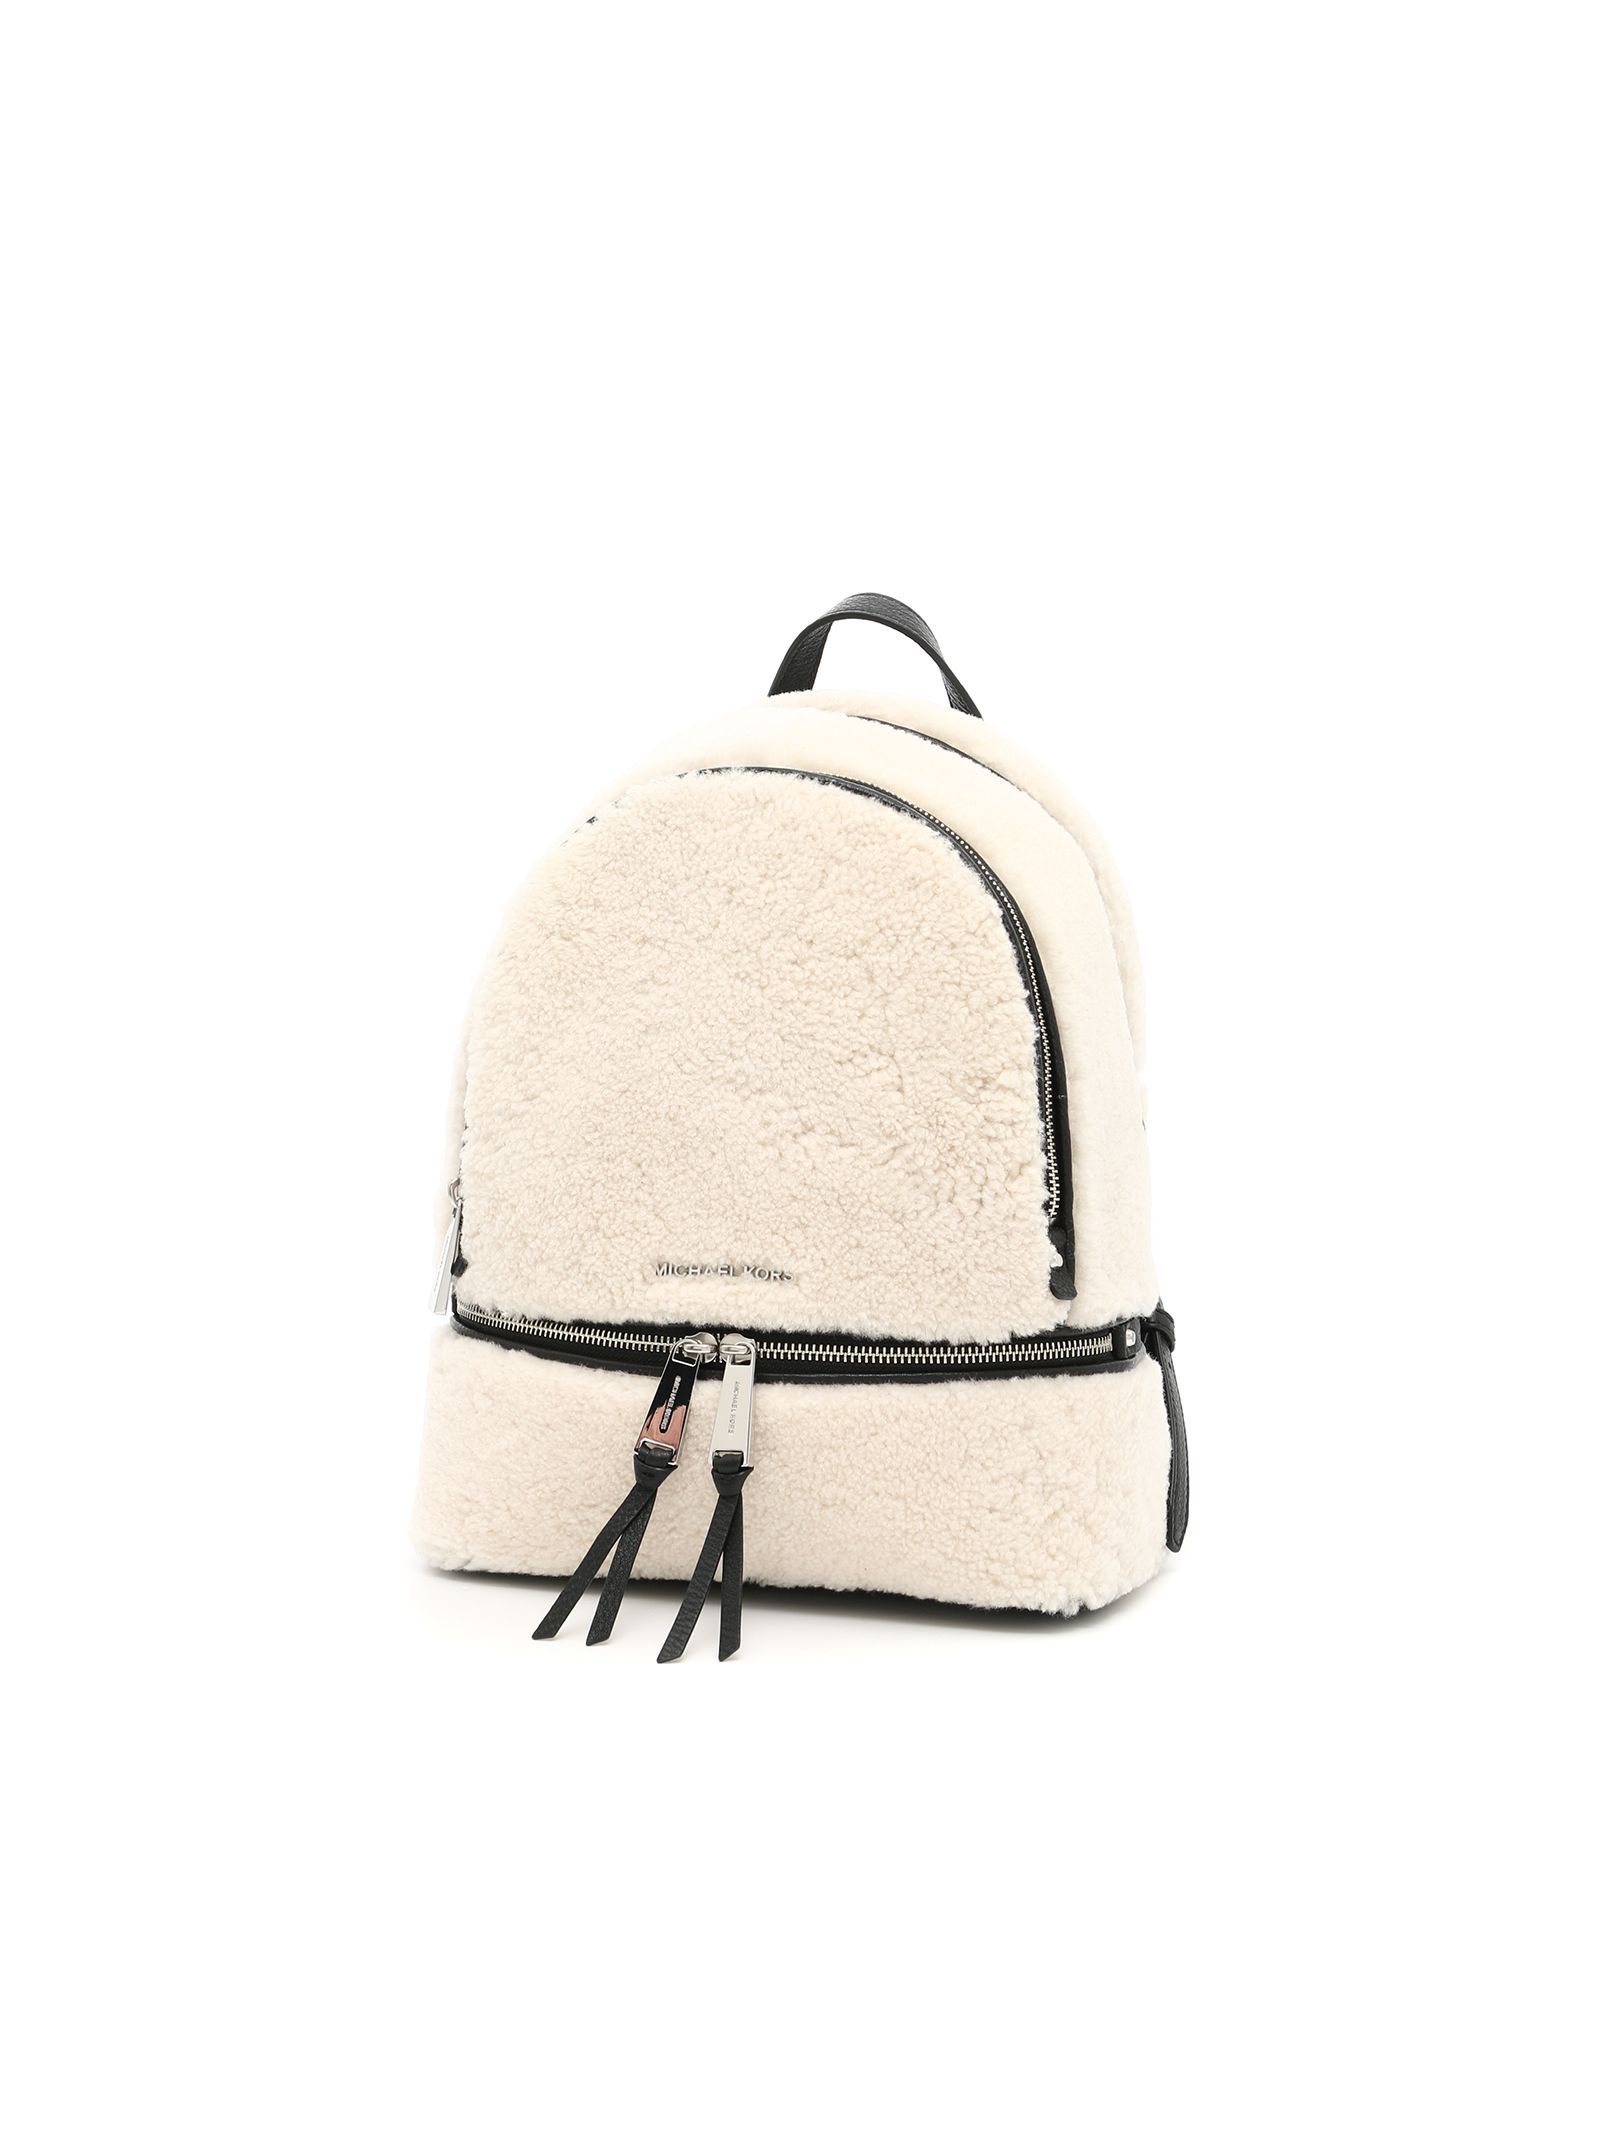 Shearling Rhea backpack with grain leather hems, adjustable shoulder straps, two compartments divided by a zip, front outer zip pocket, inside pockets, logo twill lining, front lettering logo.